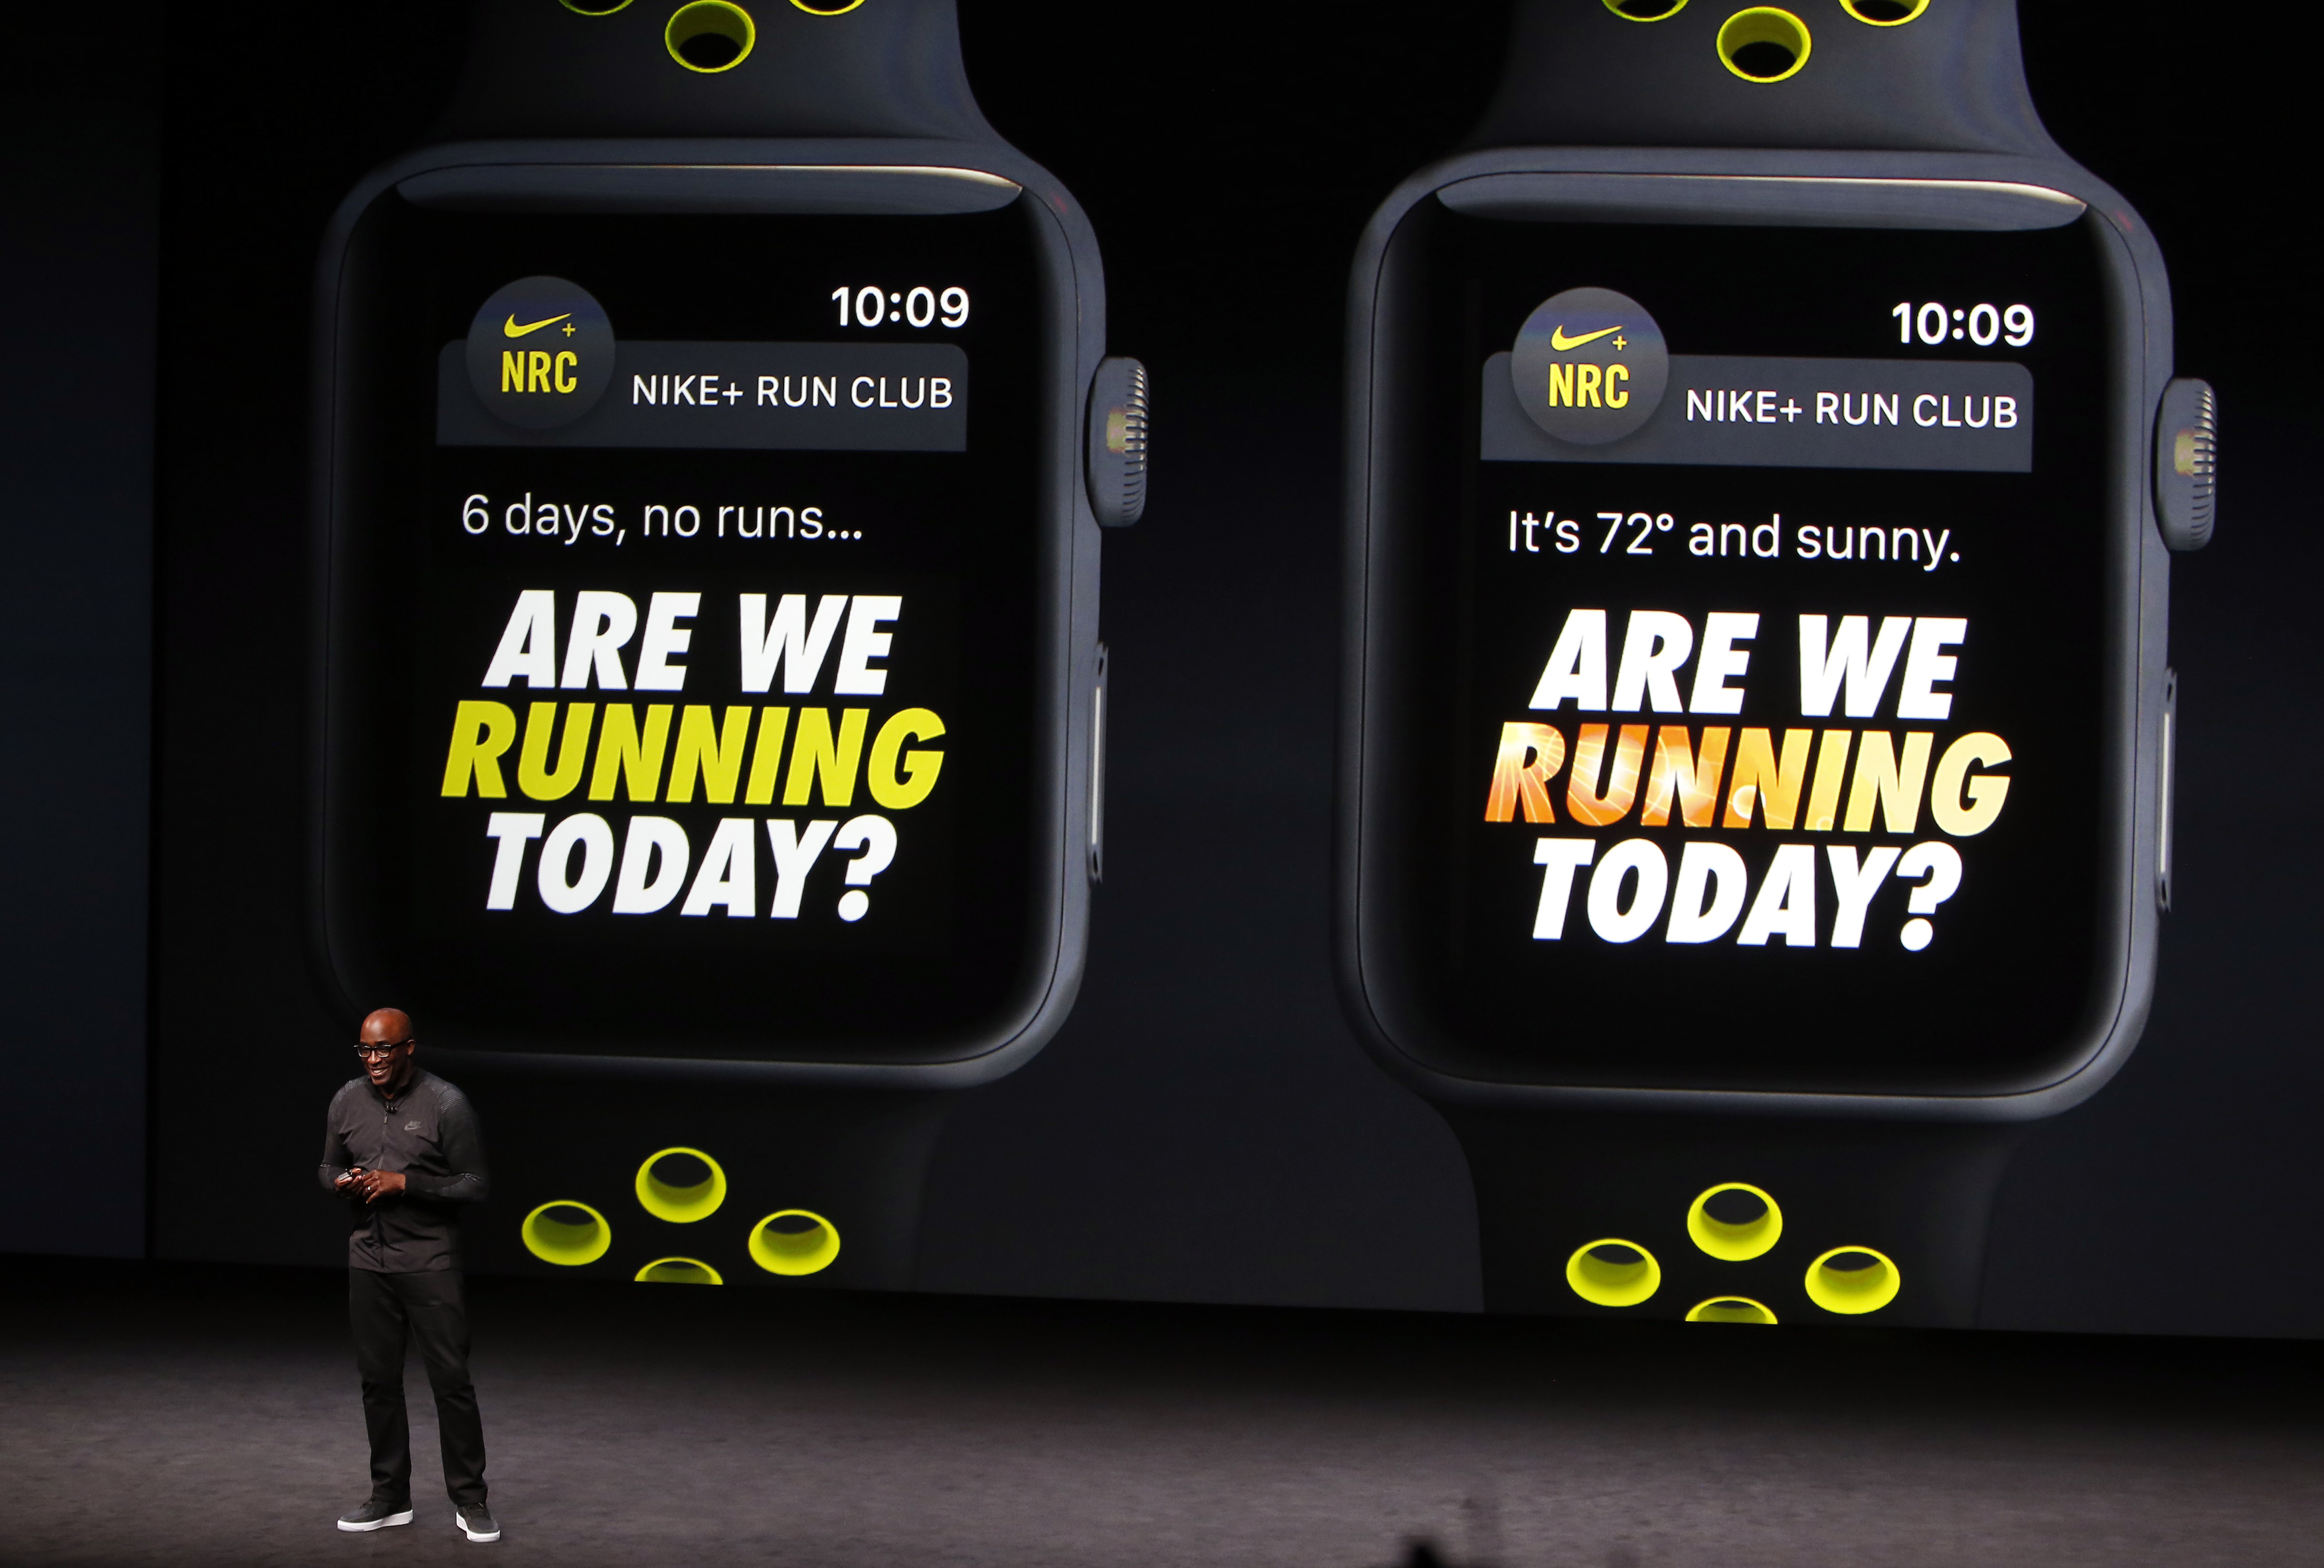 Trevor Edwards discusses the Apple Watch with Nike+ during a media event in San Francisco